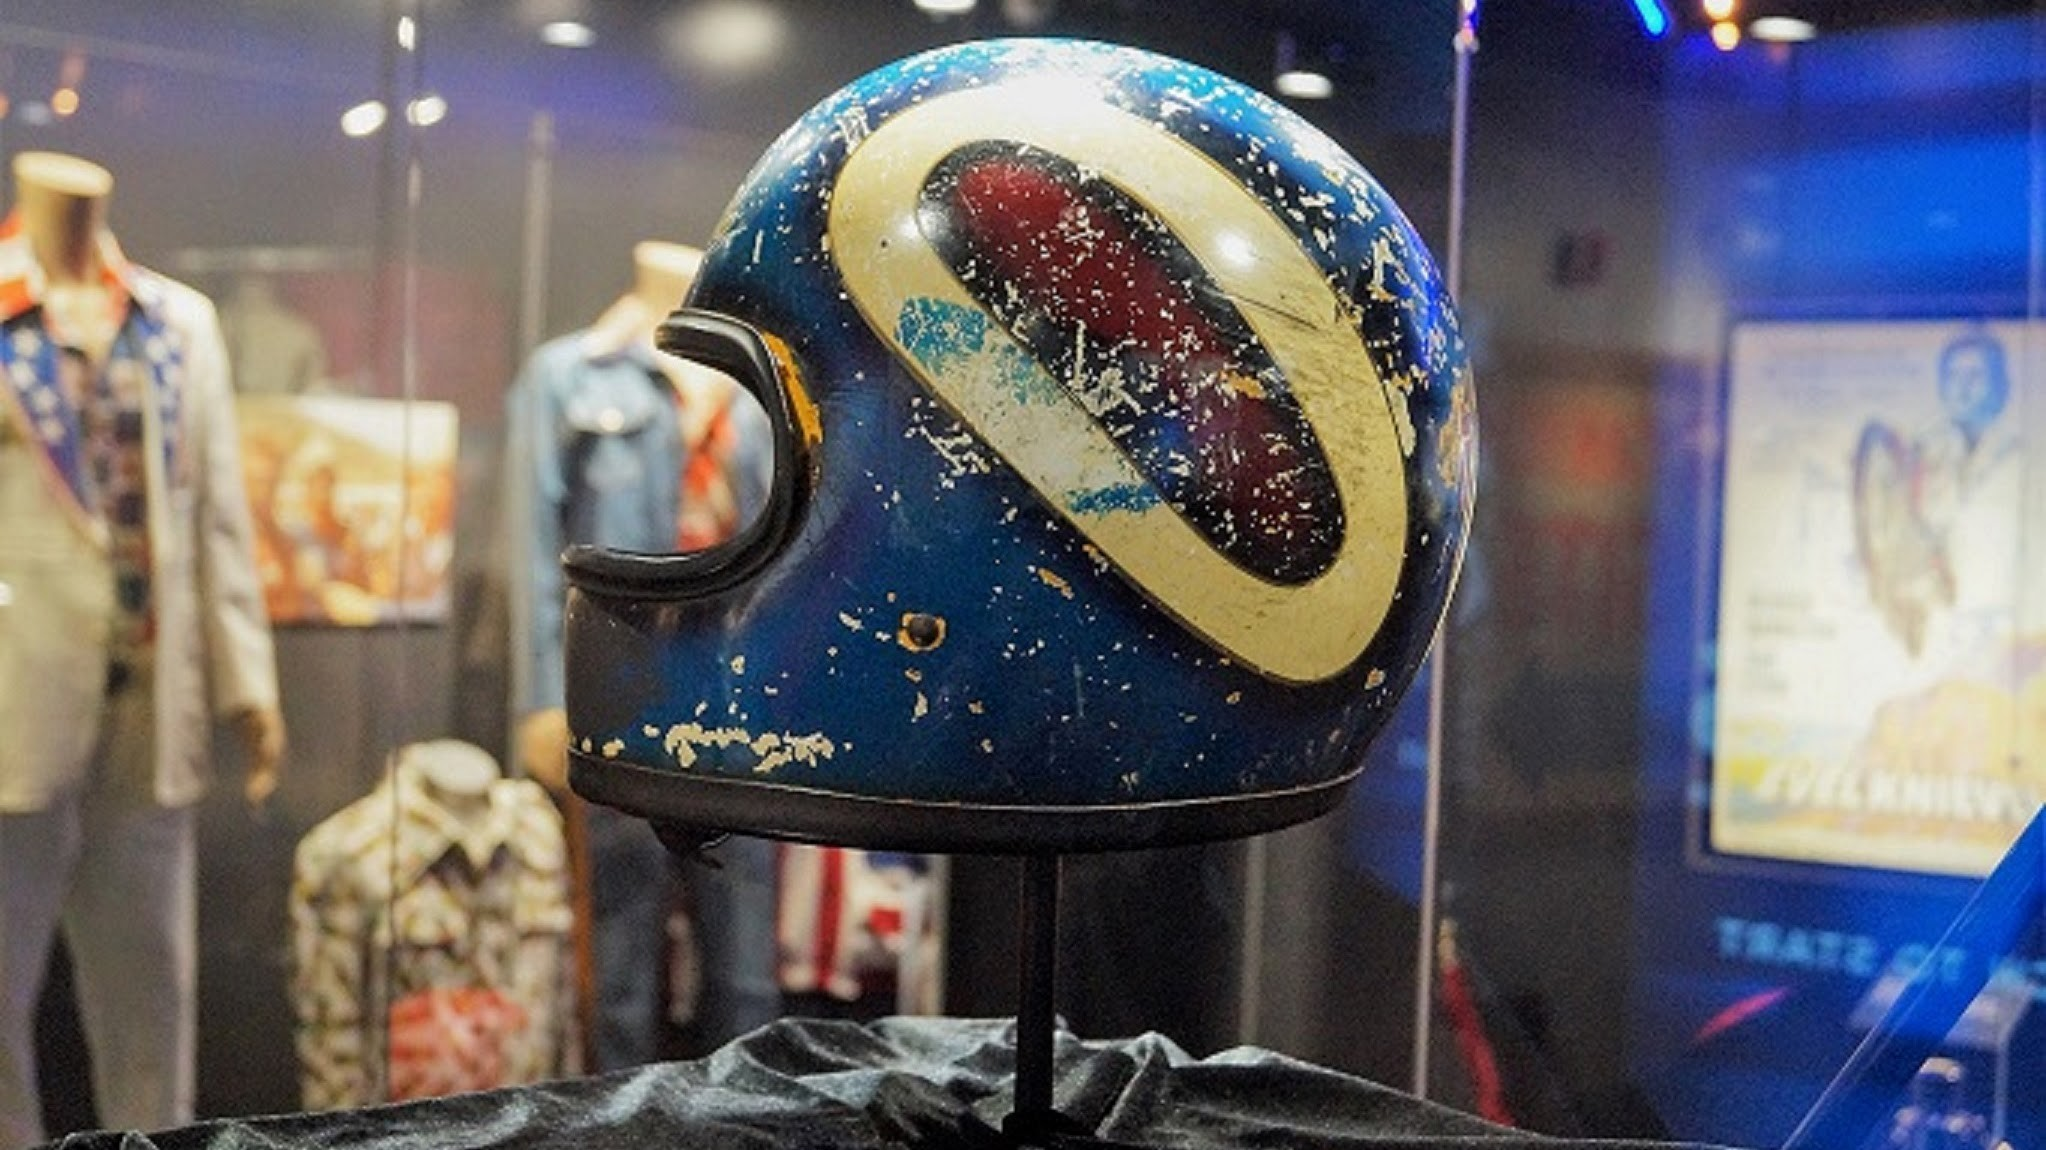 Full of scratches and dings, the helmet Evel Knievel was wearing when he crashed during his famous Las Vegas jump is on display for the first time in decades.